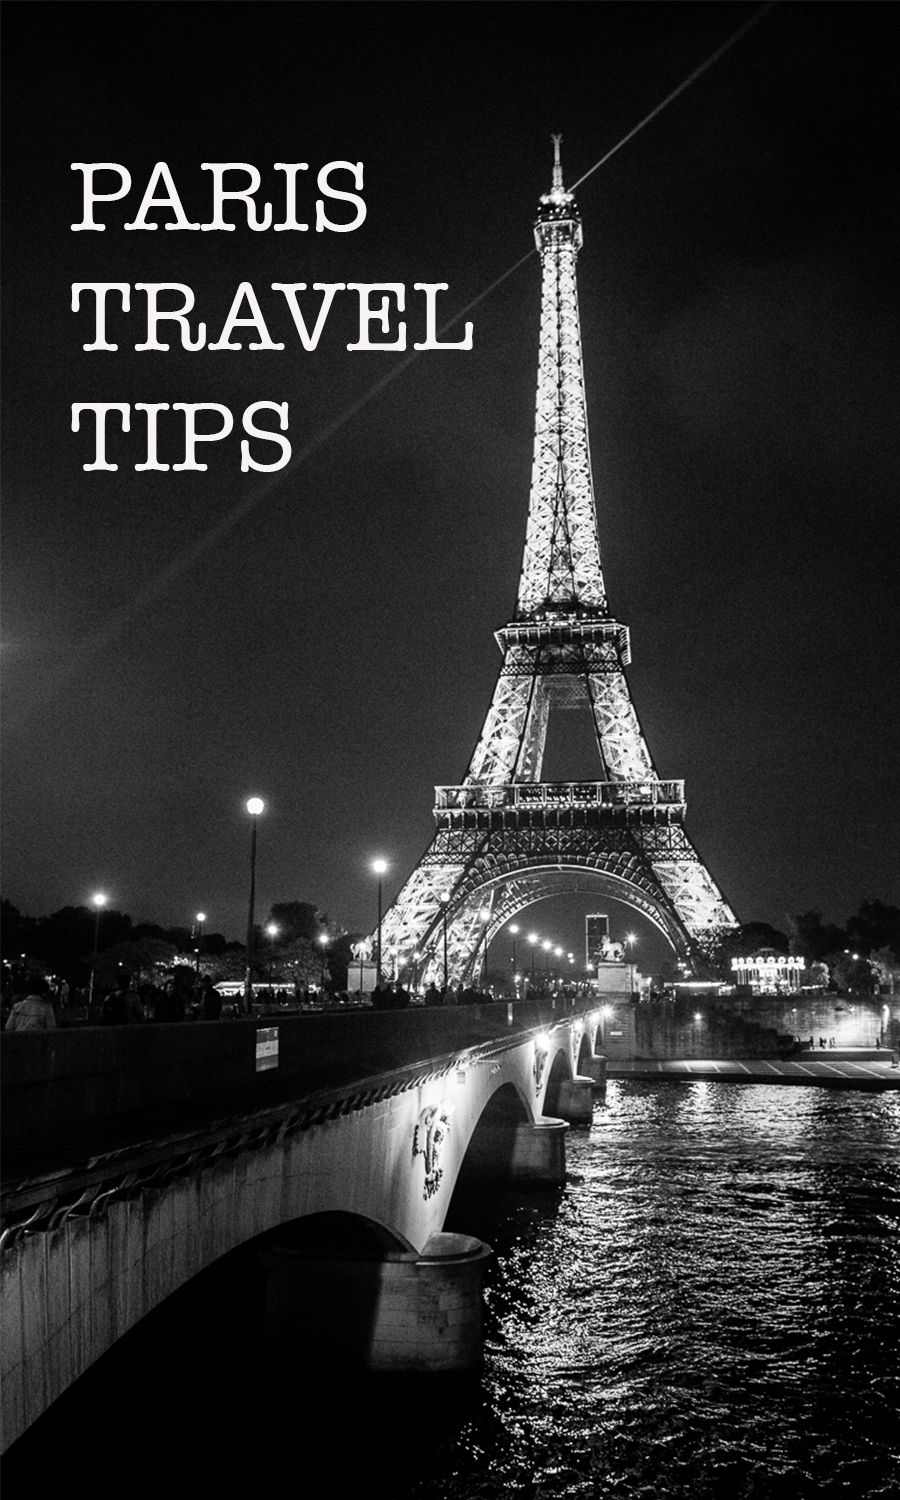 Paris-travel-tips